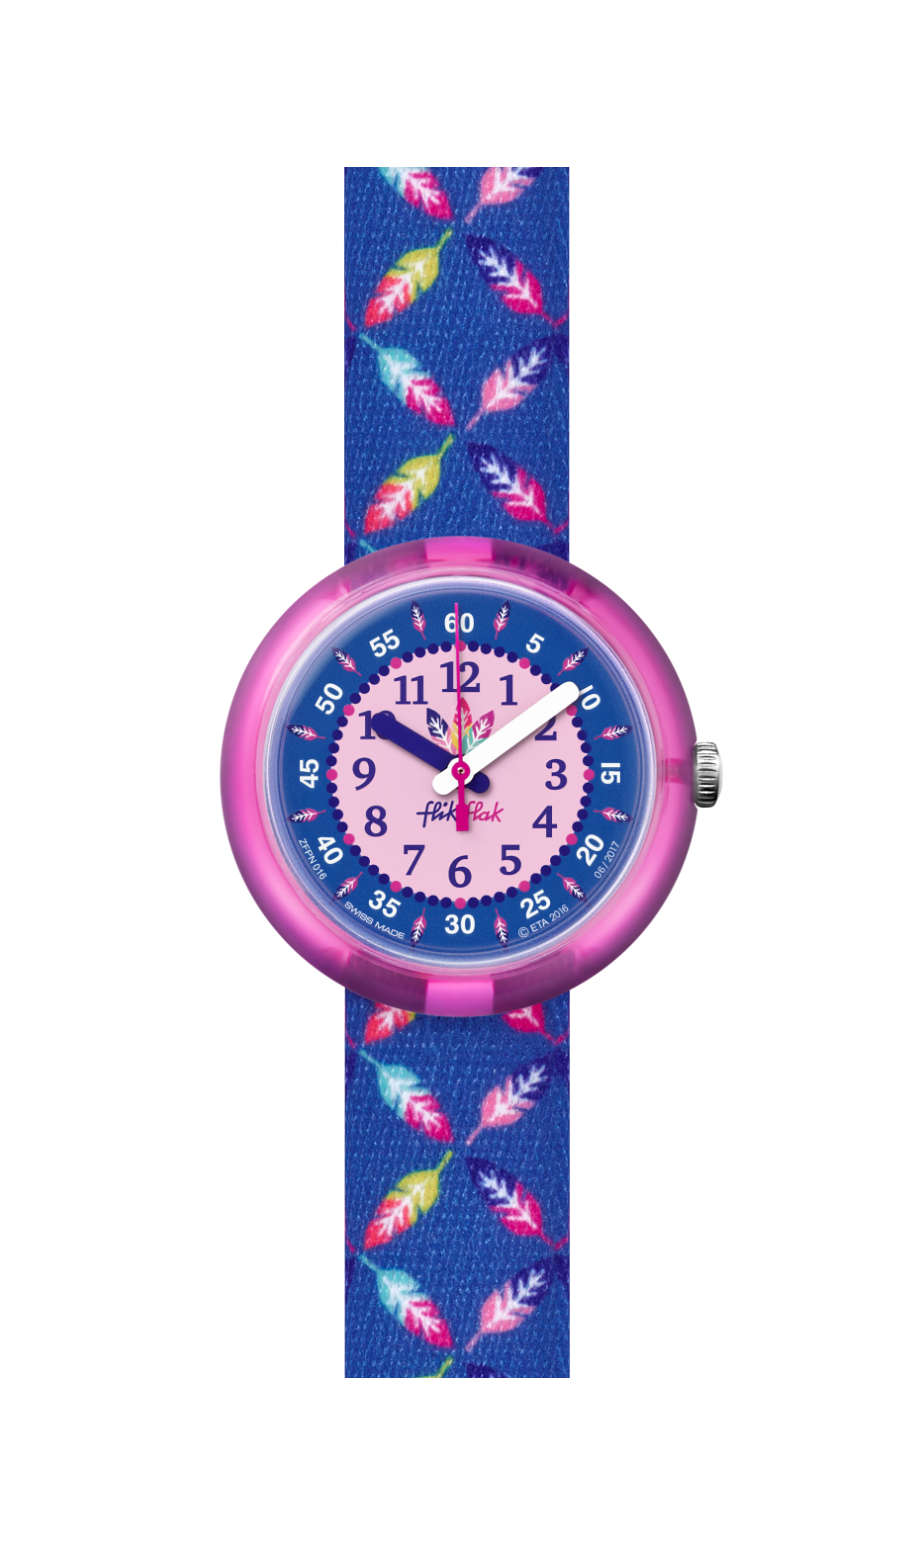 Swatch - COOL FEATHER - 1